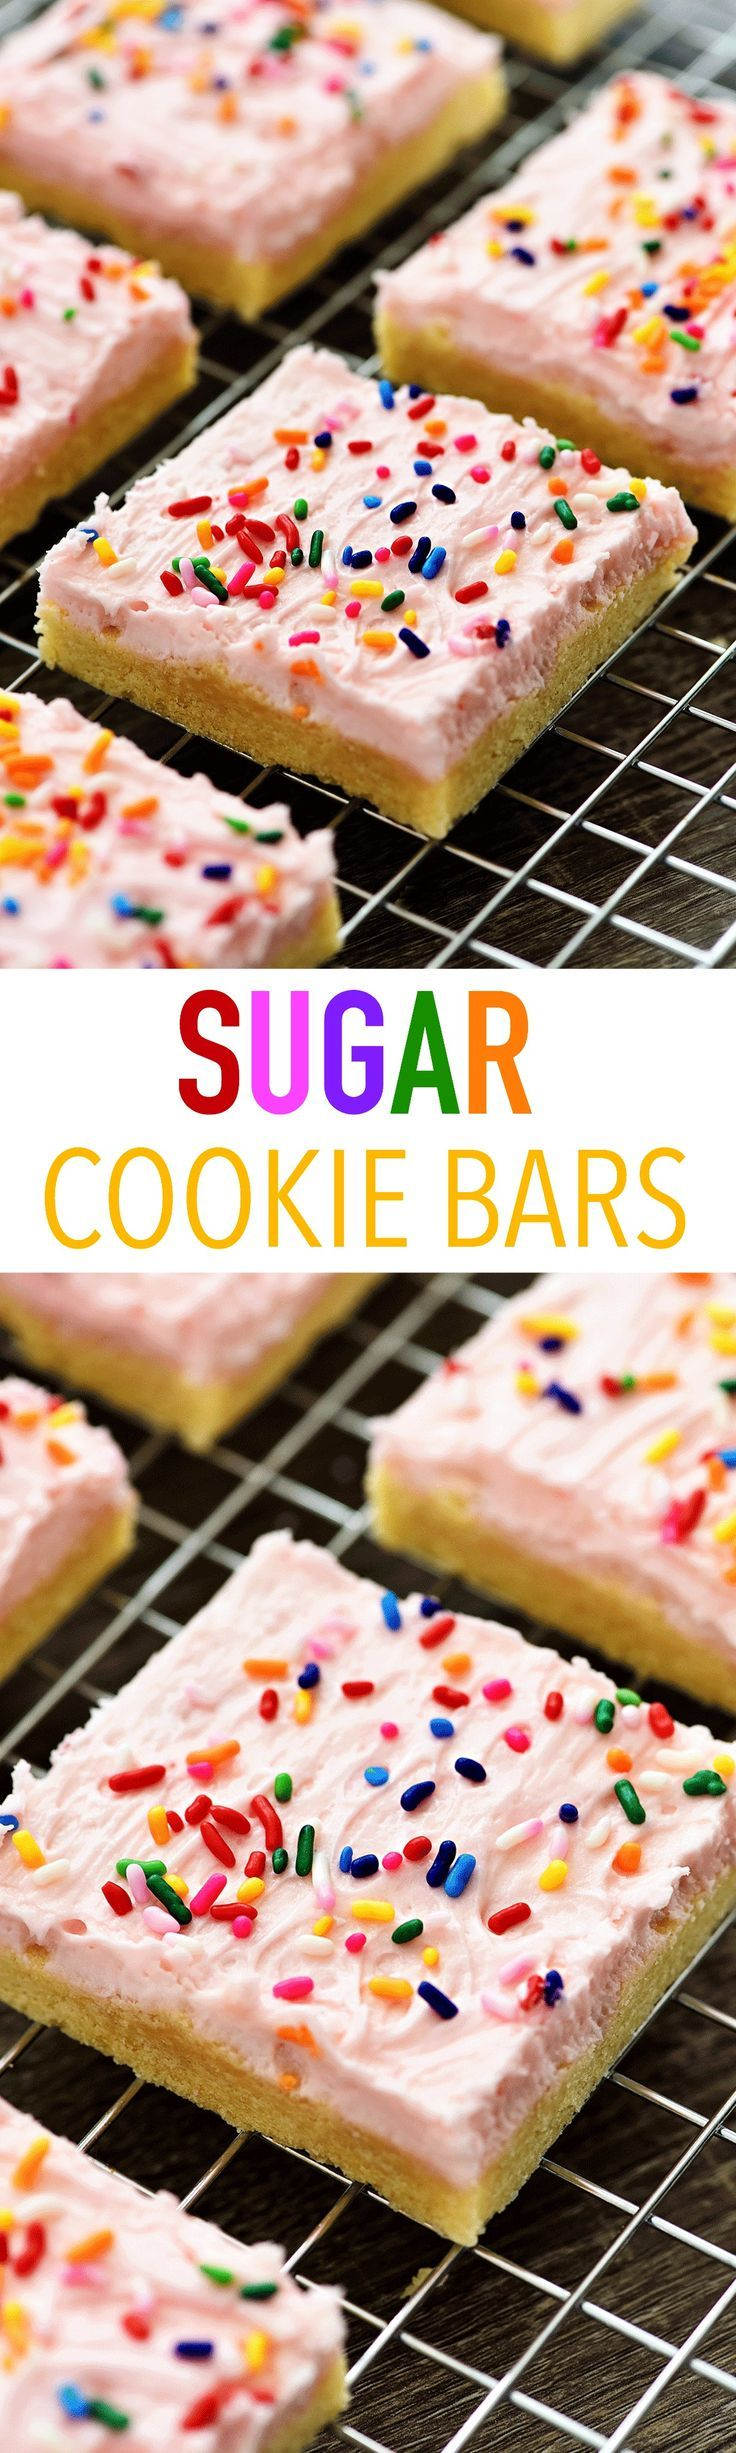 I love a soft, frosted homemade sugar cookie! ♥ They are famous on Valentines Day, and since it's right around the corner I thought I'd share this outstanding recipe for Sugar Cookie Bars! These bars are phenomenal! Seriously, amazing! And bonus they are so much easier to make than the traditional sugar cookie. No chilling the dough, or rolling and cutting.... Read More »: